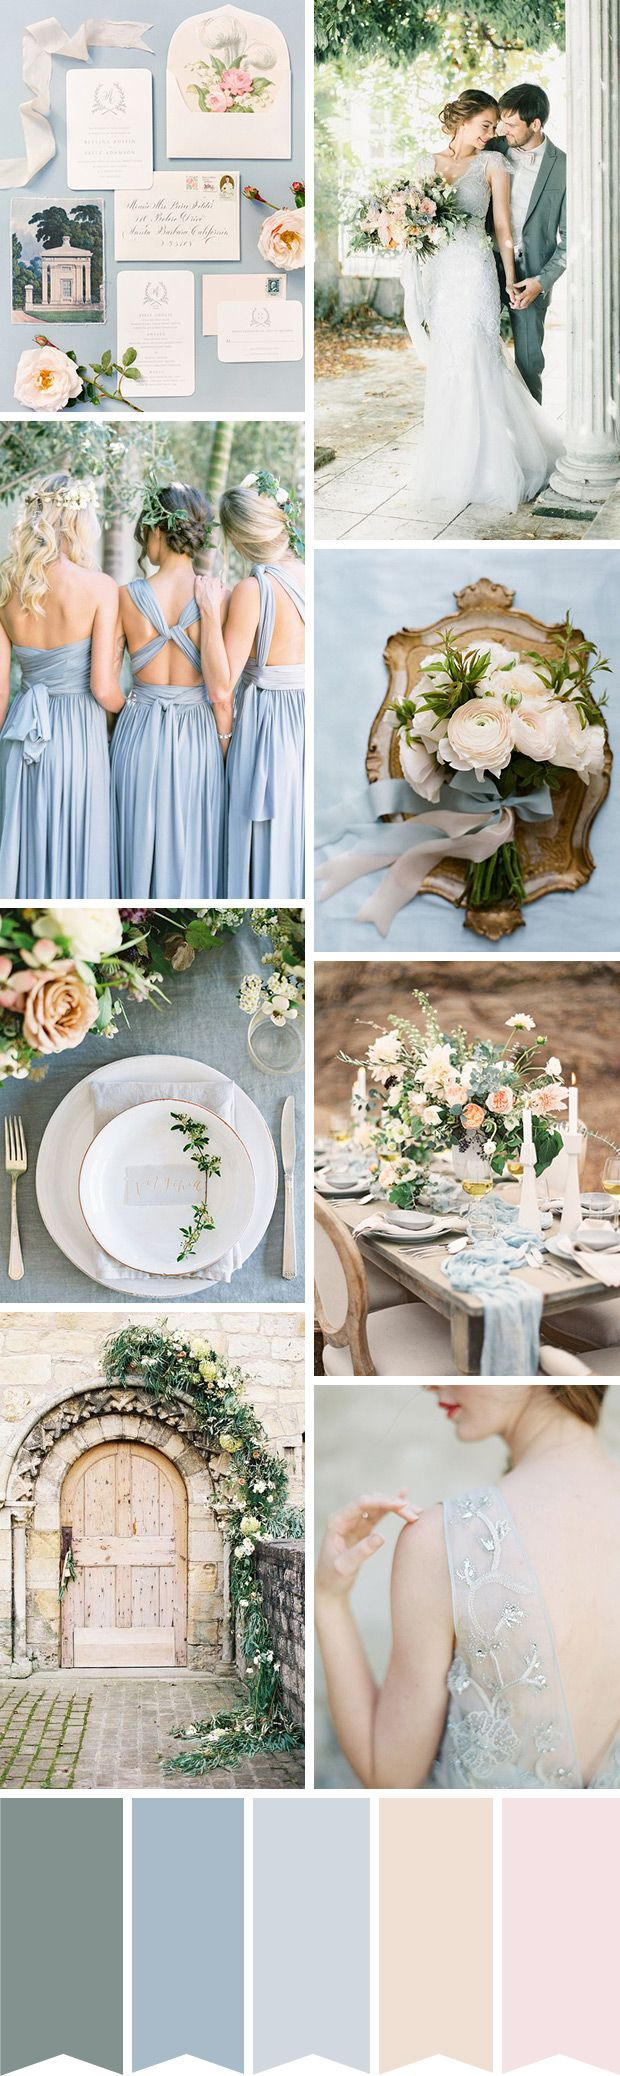 A Tuscan-inspired wedding palette of delicate duck egg blue, dove grey, softest peach, pink and antique gold...